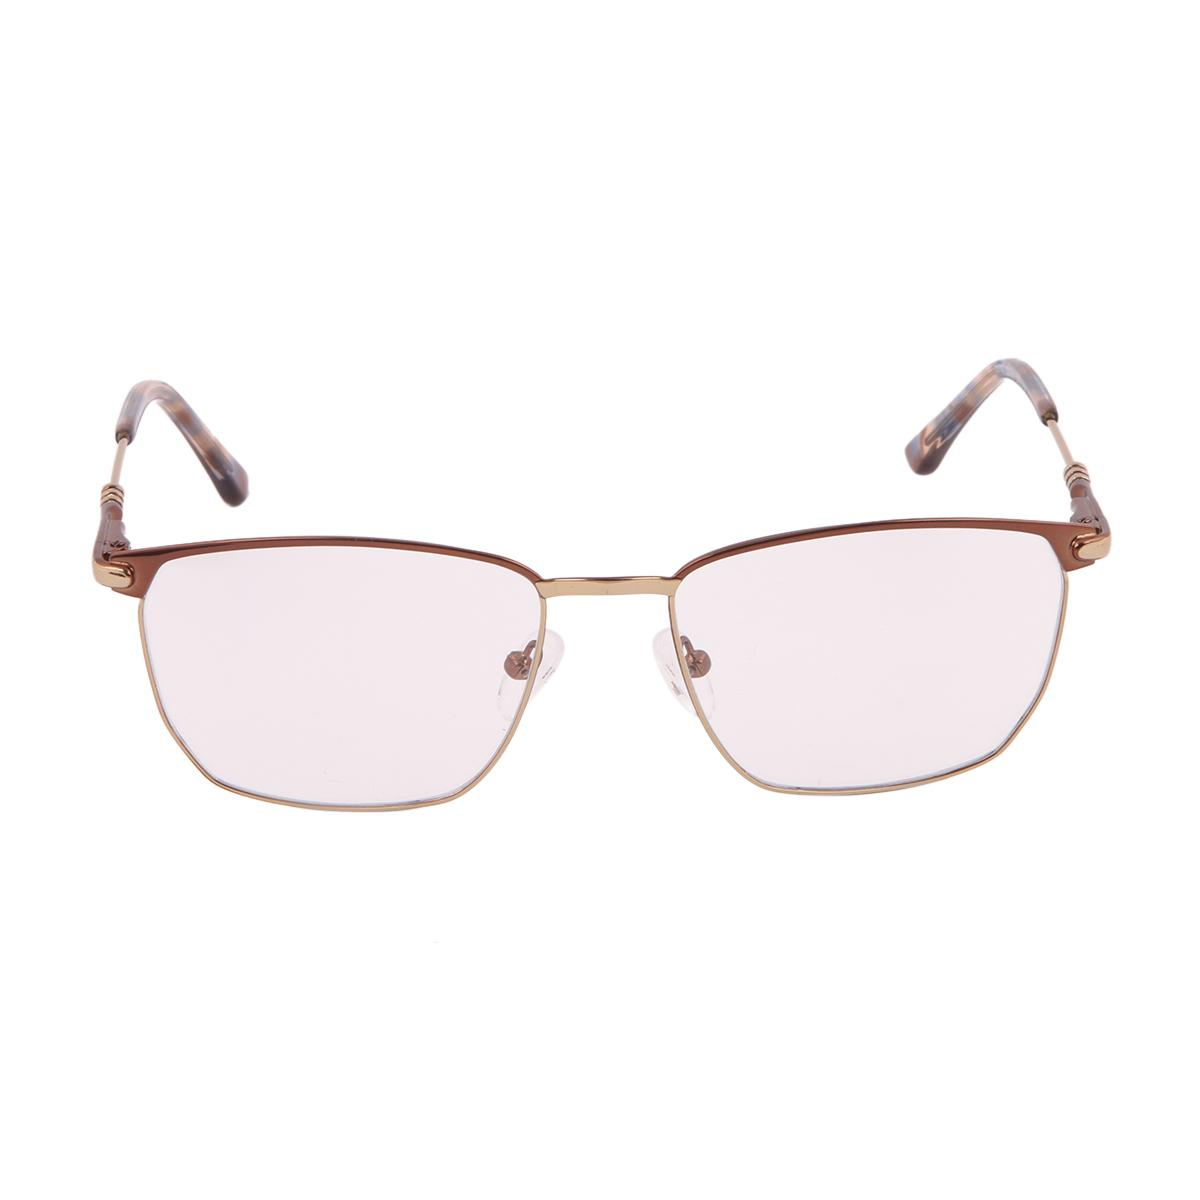 5257e5af797 Buy Gucci Womens Prescription glasses at Best Prices Online in ...